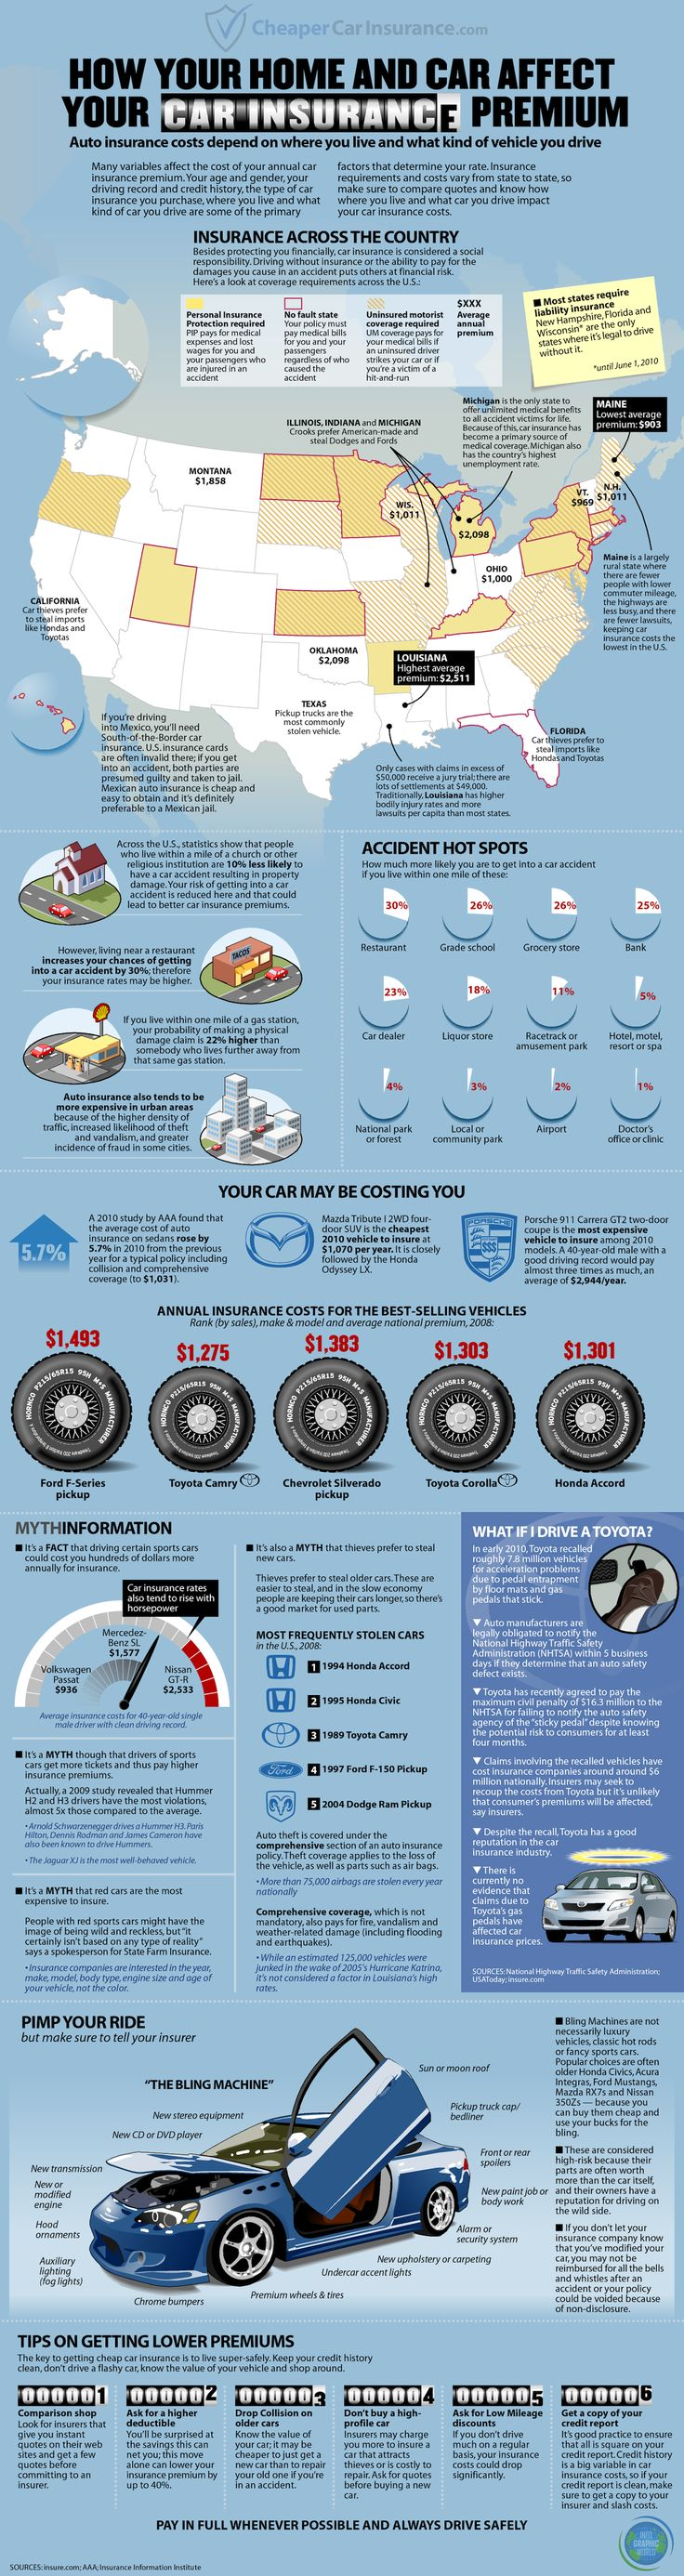 How your home & car affect your insurance premiums. #infographic